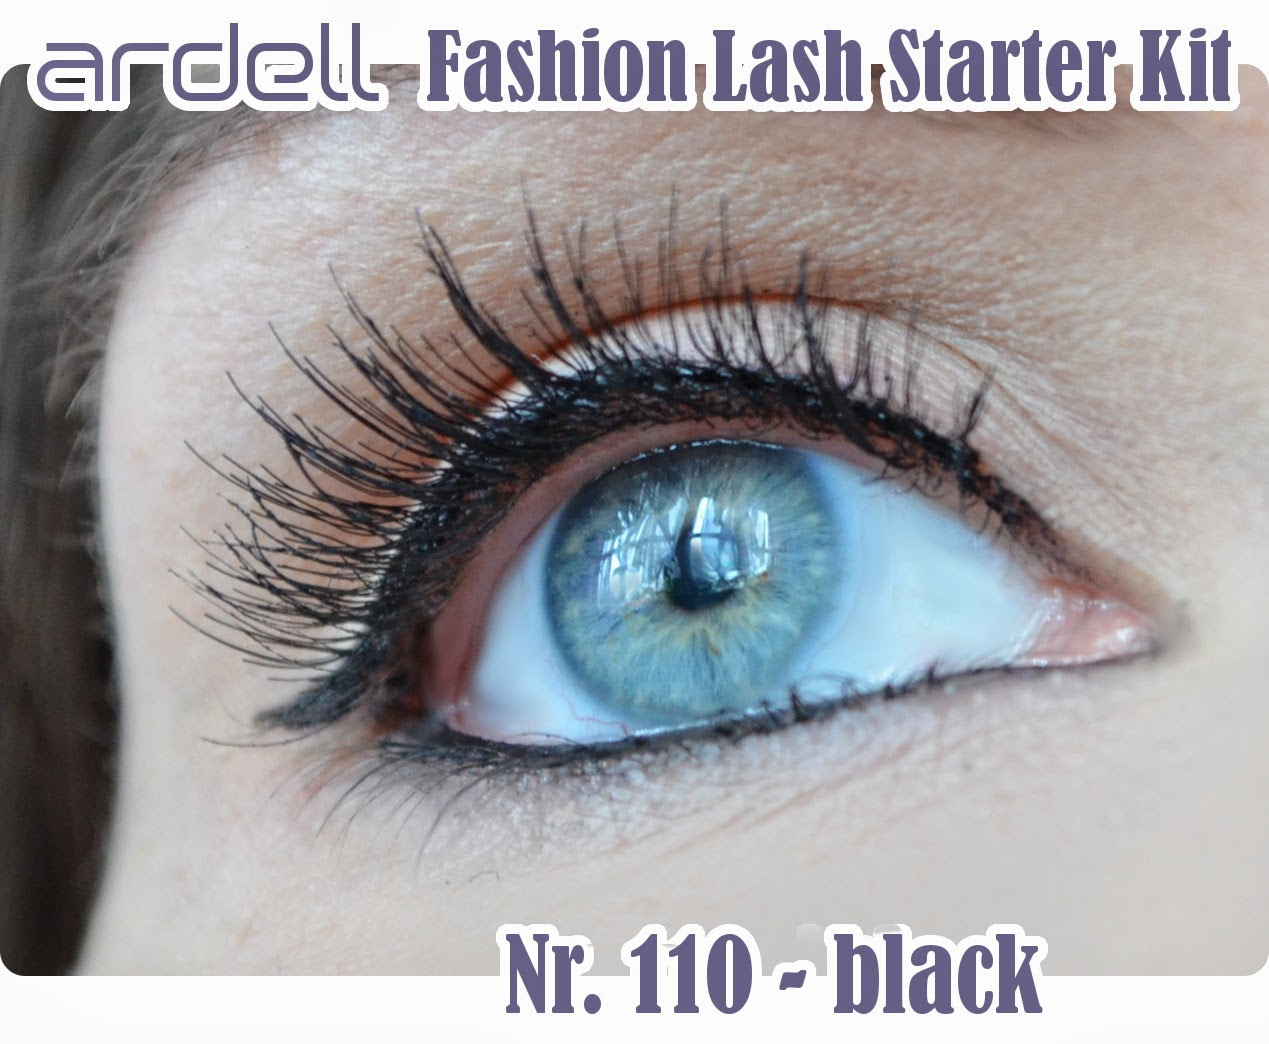 Review Ardell Fashion Lash Natural Starter Kit - Nr. 110 BLACK